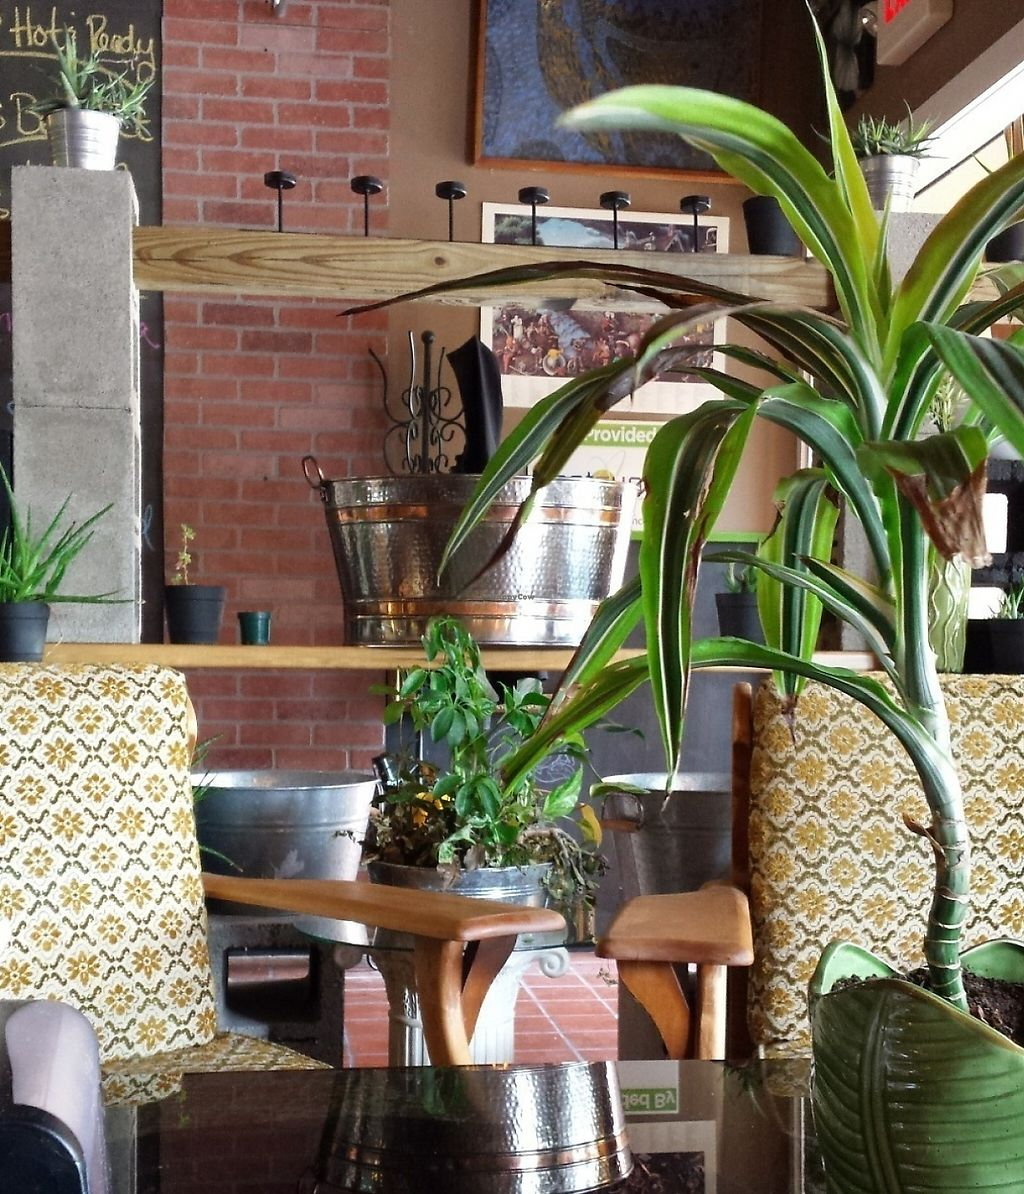 """Photo of Aloe Vera's Eatery  by <a href=""""/members/profile/American%20Vegan"""">American Vegan</a> <br/>Aloe Vera ambiance  <br/> July 16, 2016  - <a href='/contact/abuse/image/74918/209845'>Report</a>"""